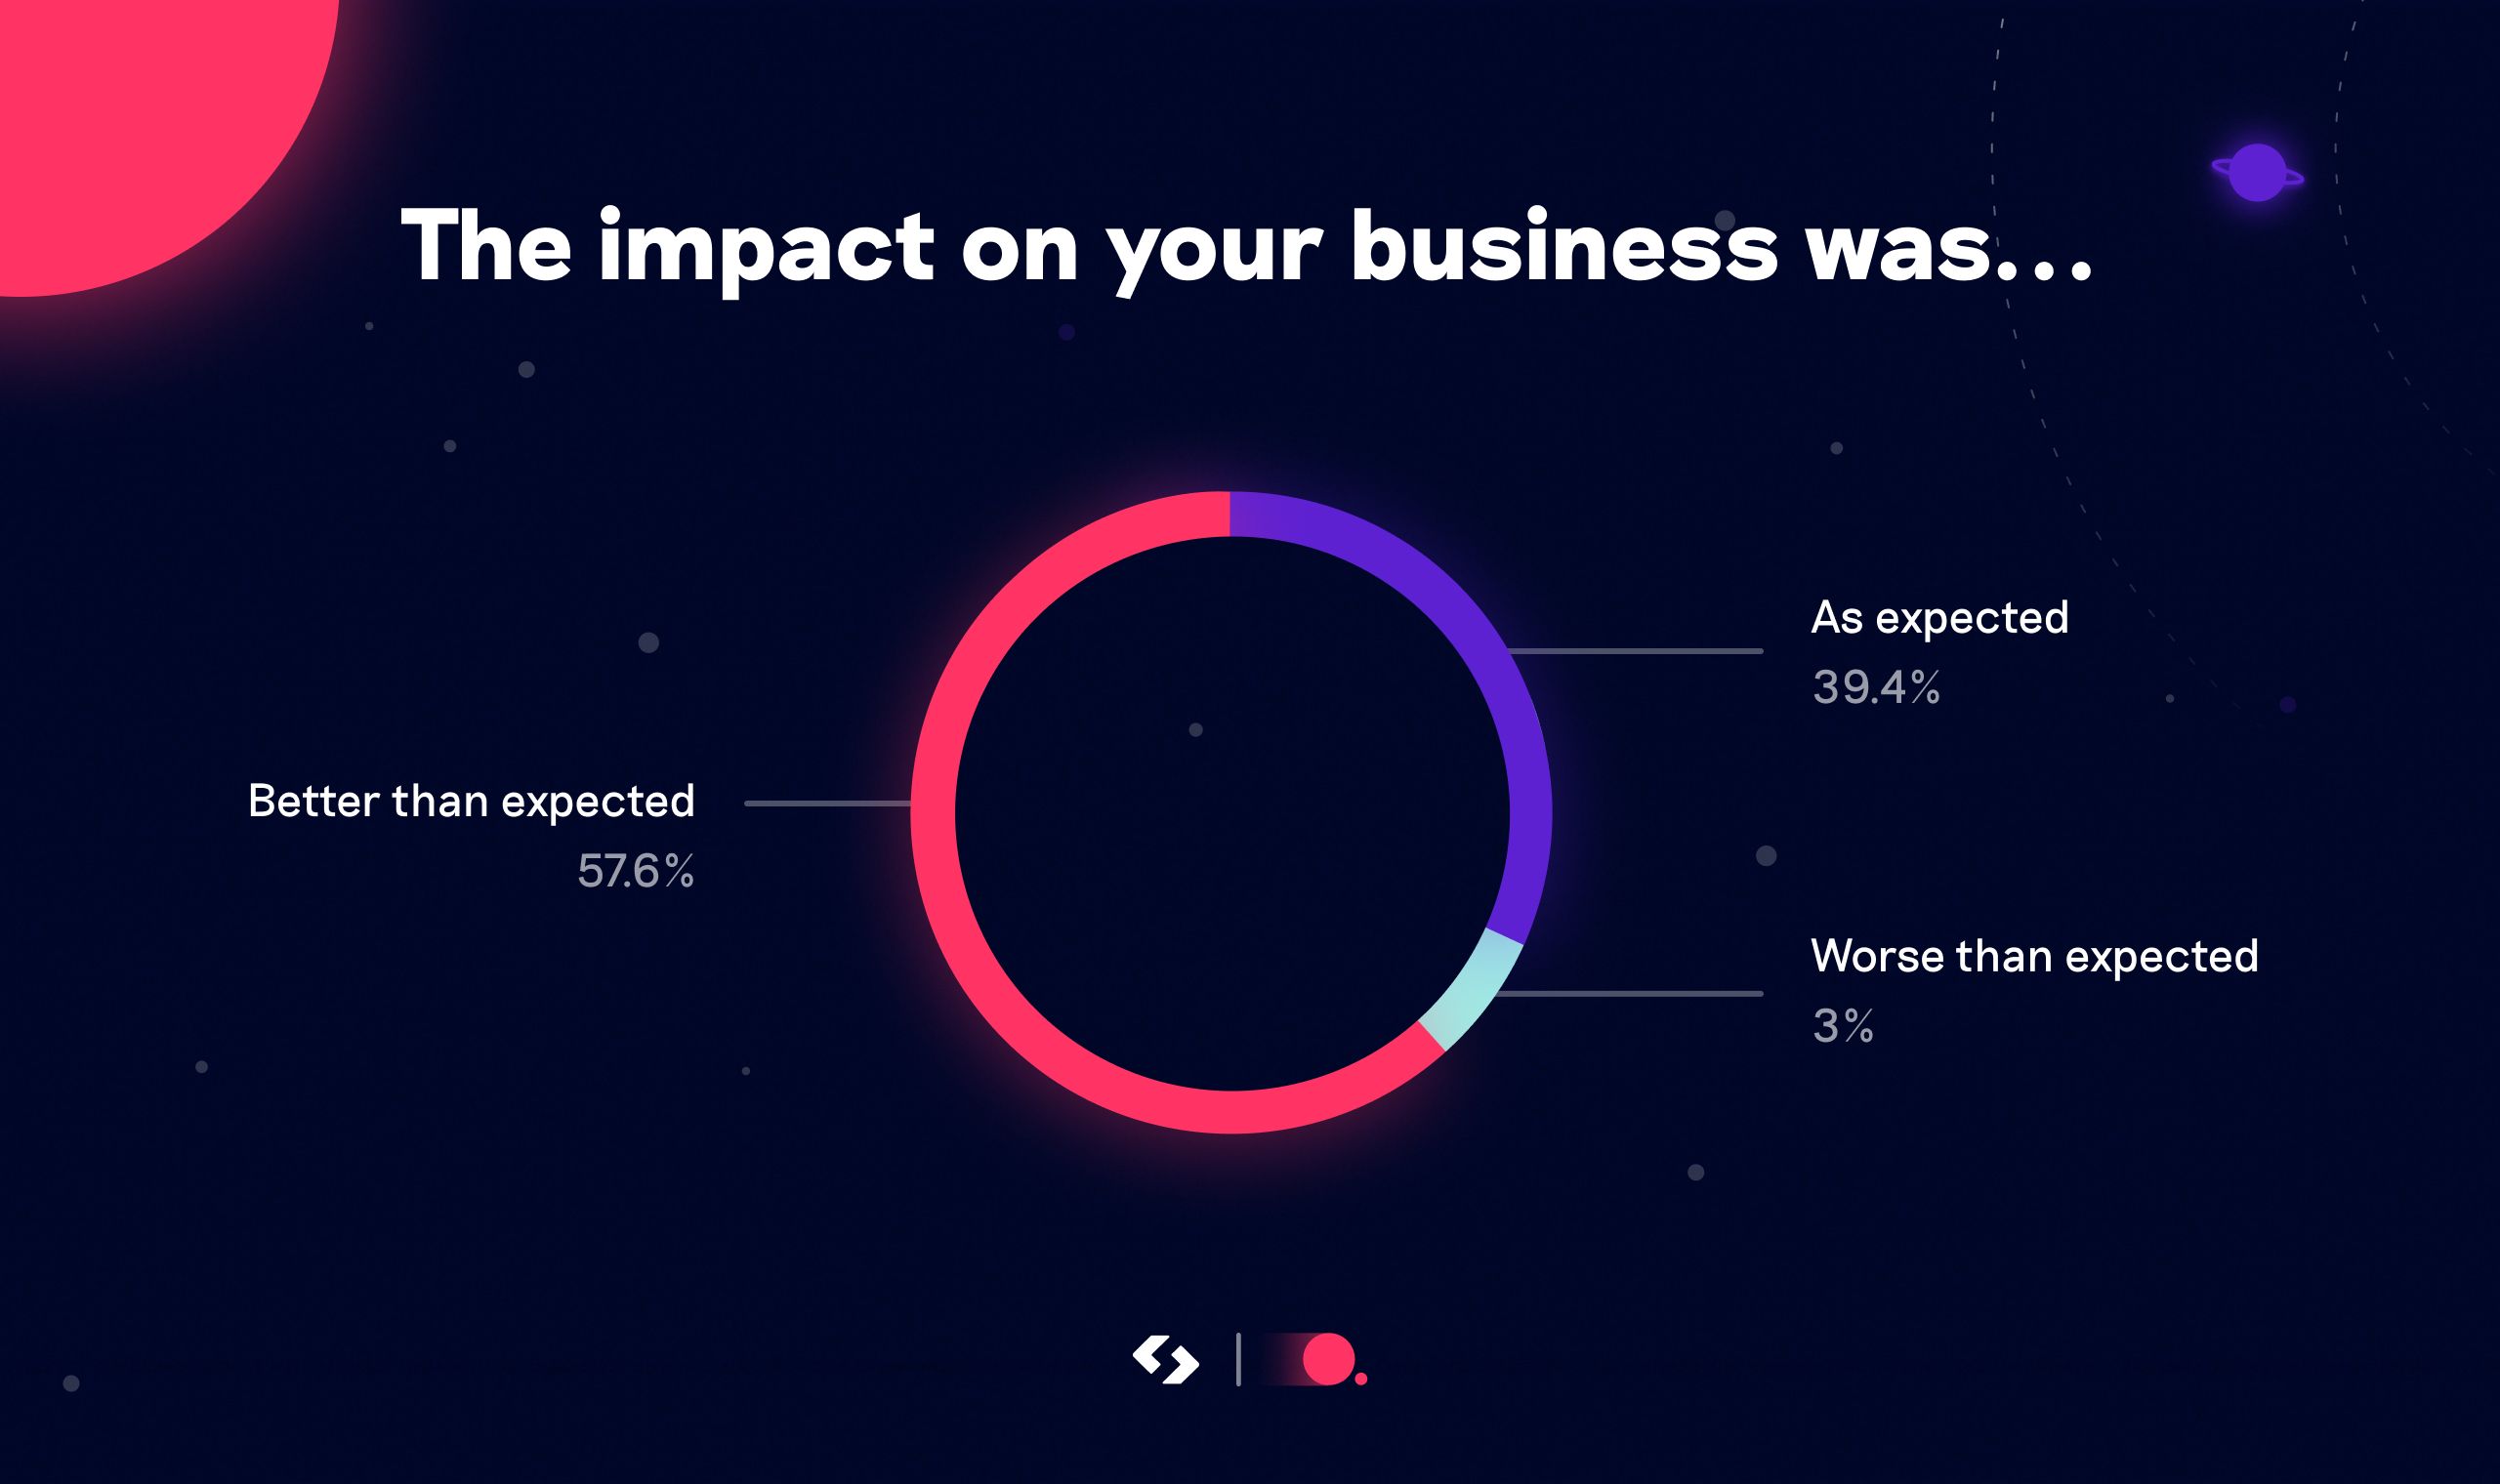 Impact on your business was